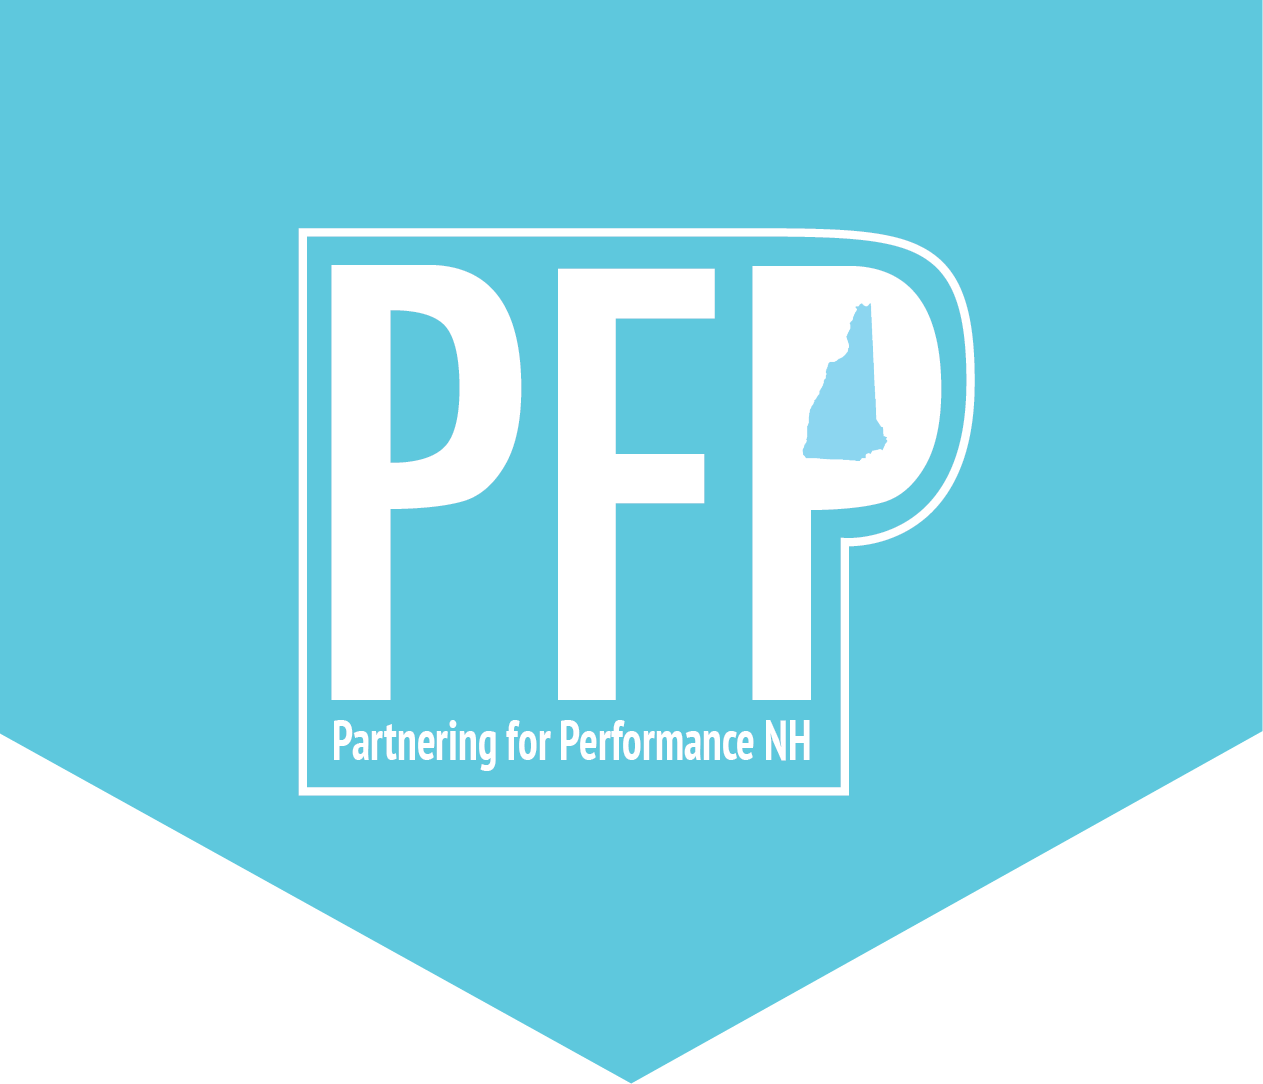 Partnering for Performance New Hampshire